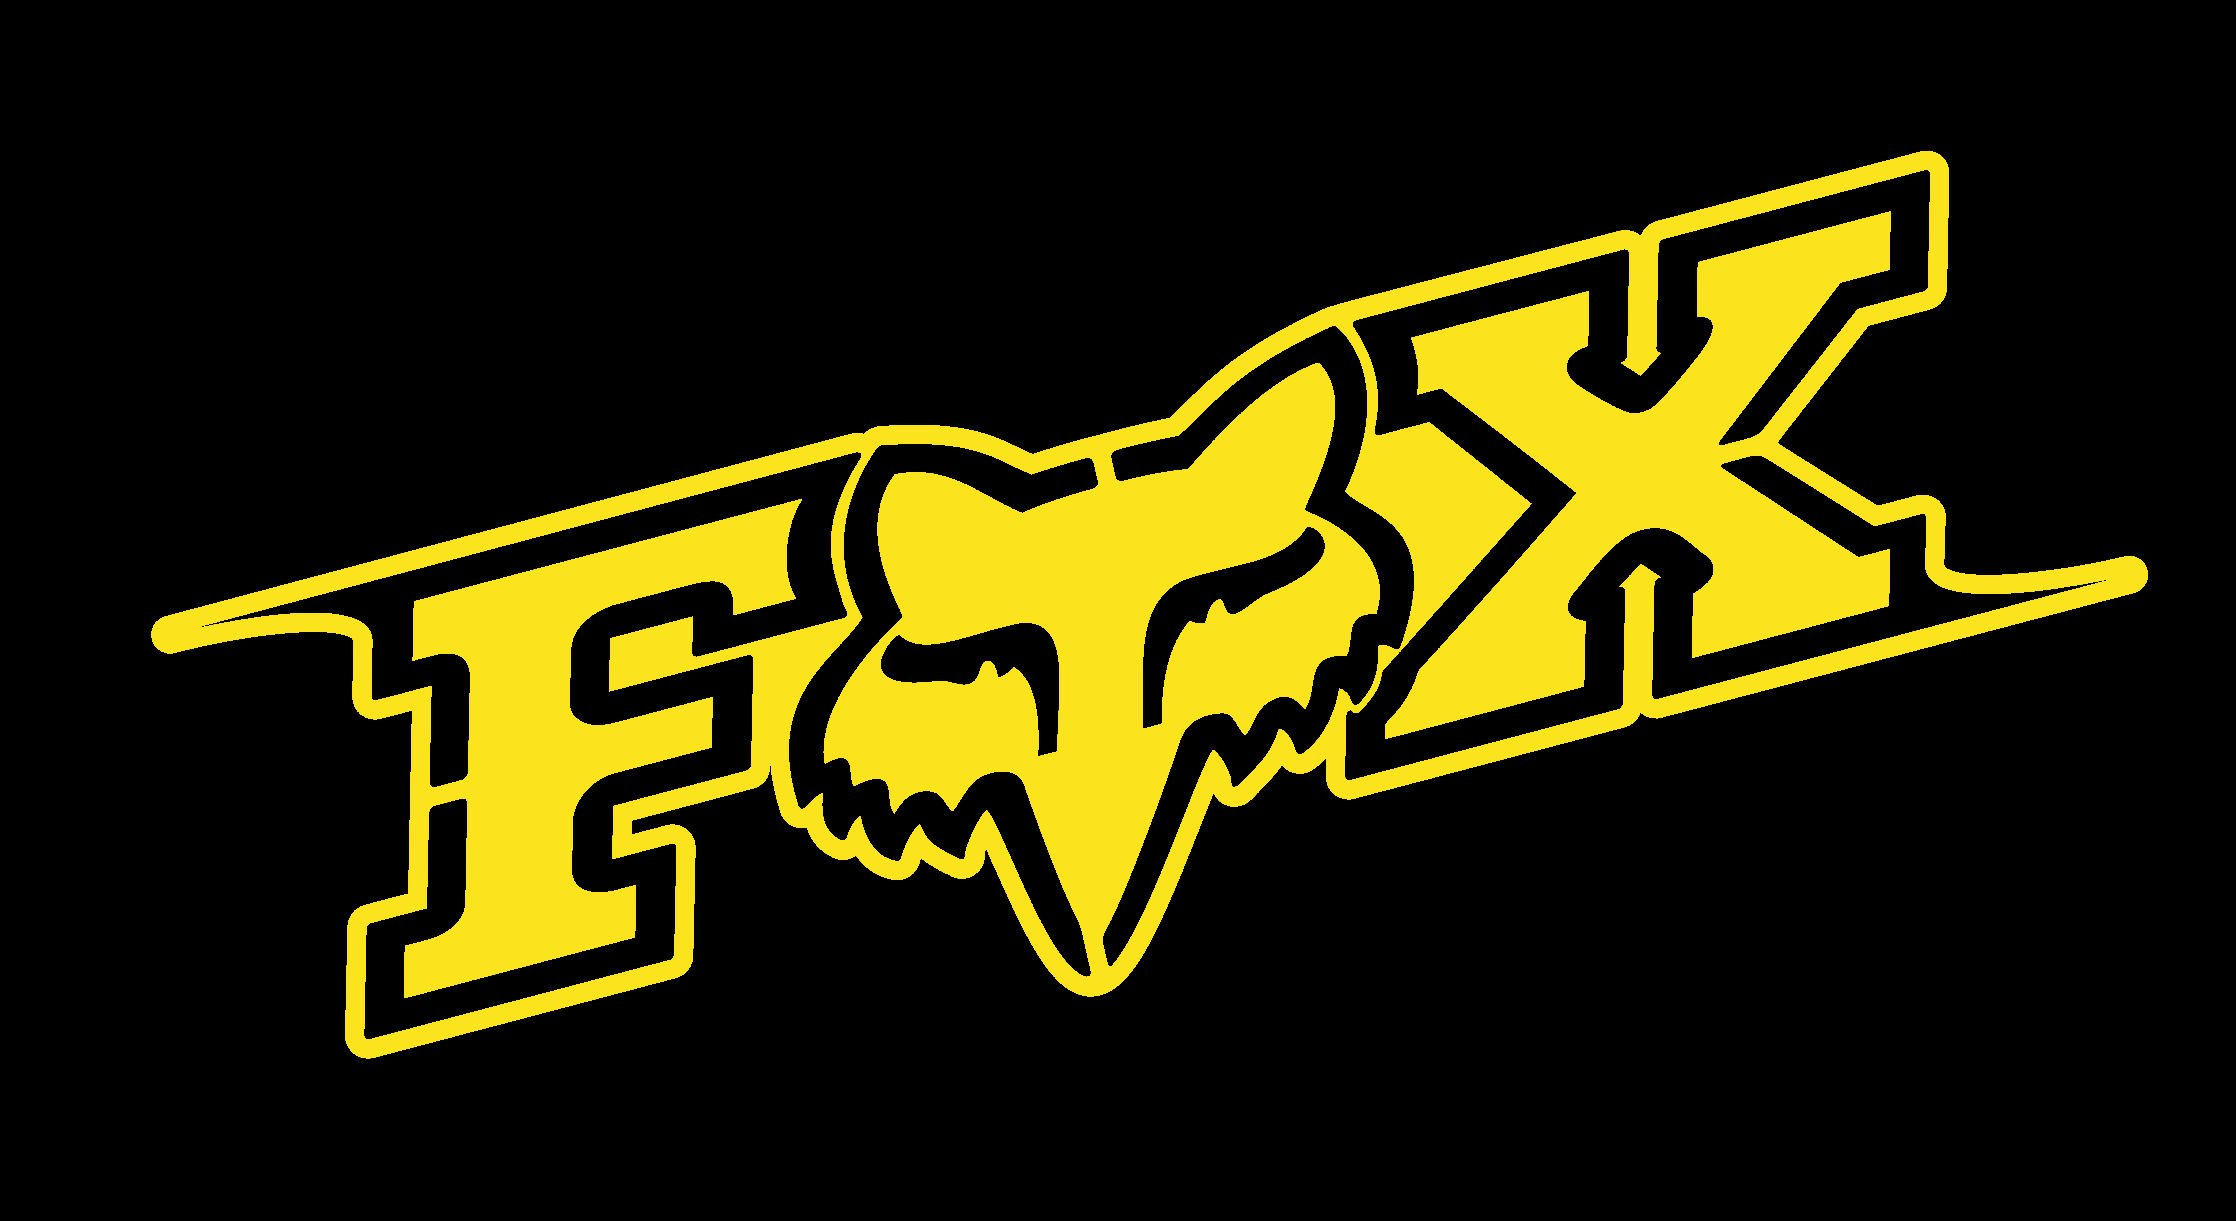 File Name 806838 Best Logos Wallpaper Fox Racing 806838 Logos 2236x1221